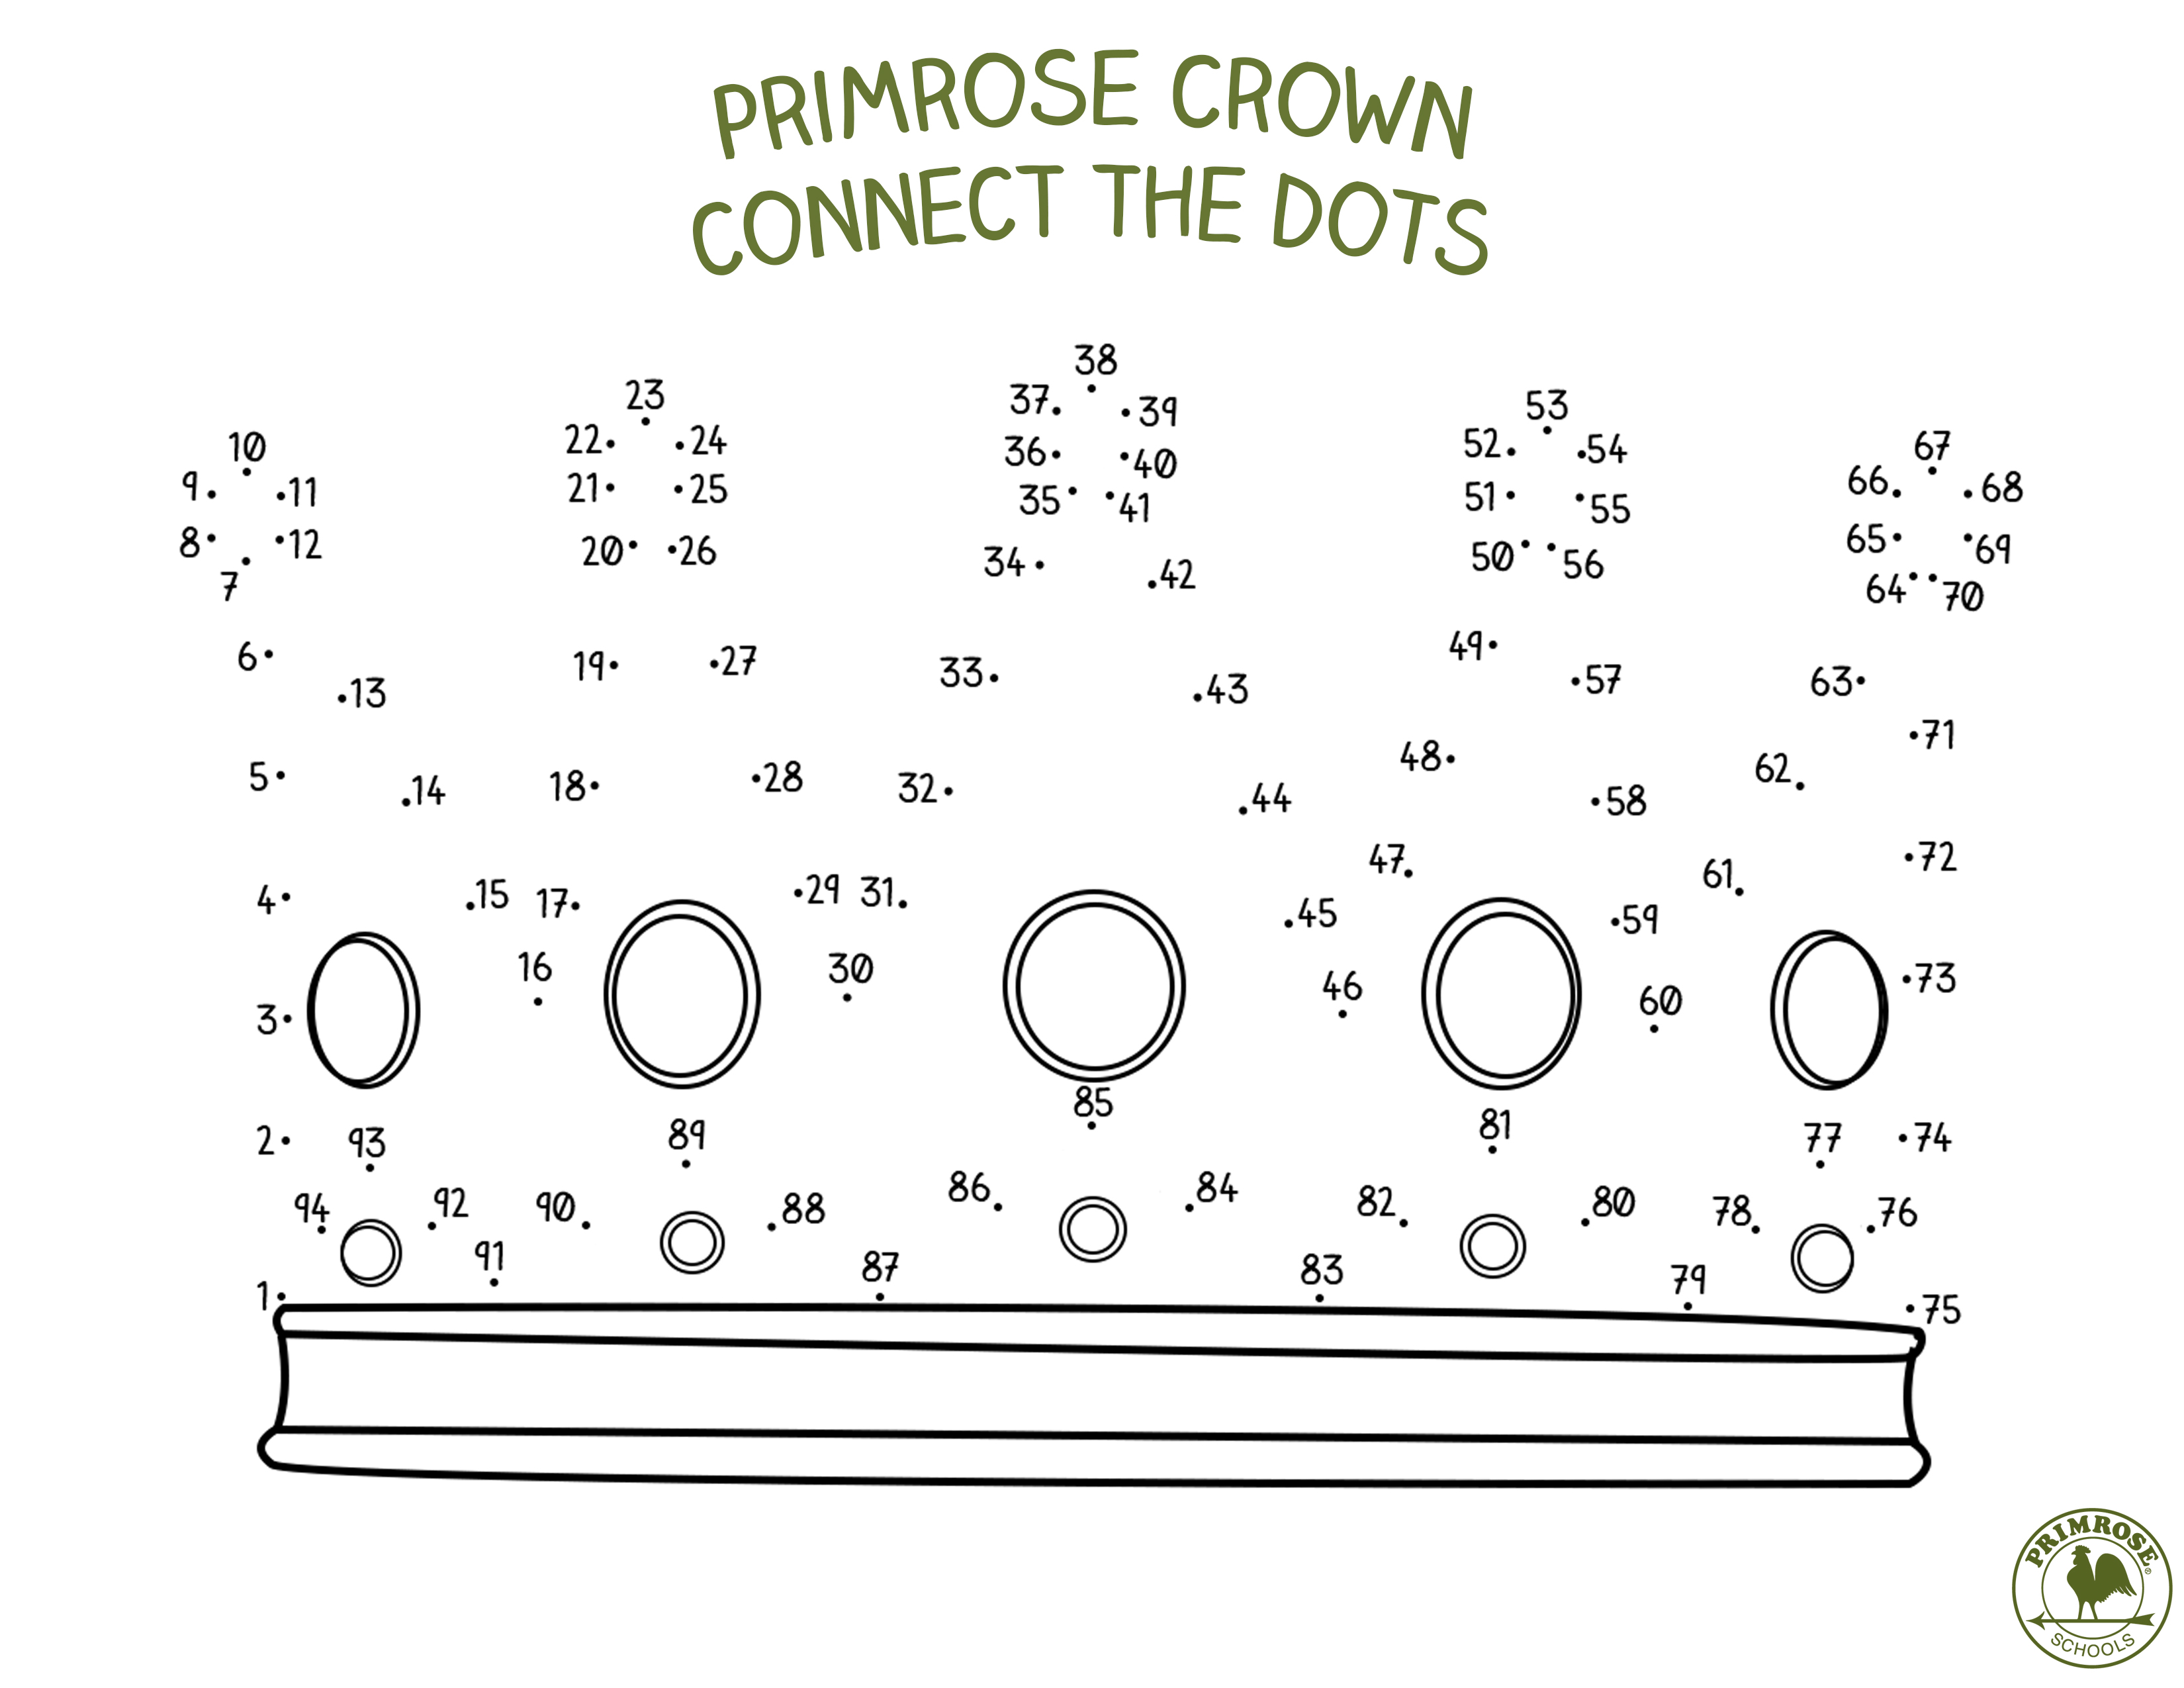 connect the dots to complete the crown u2013 primrose schools